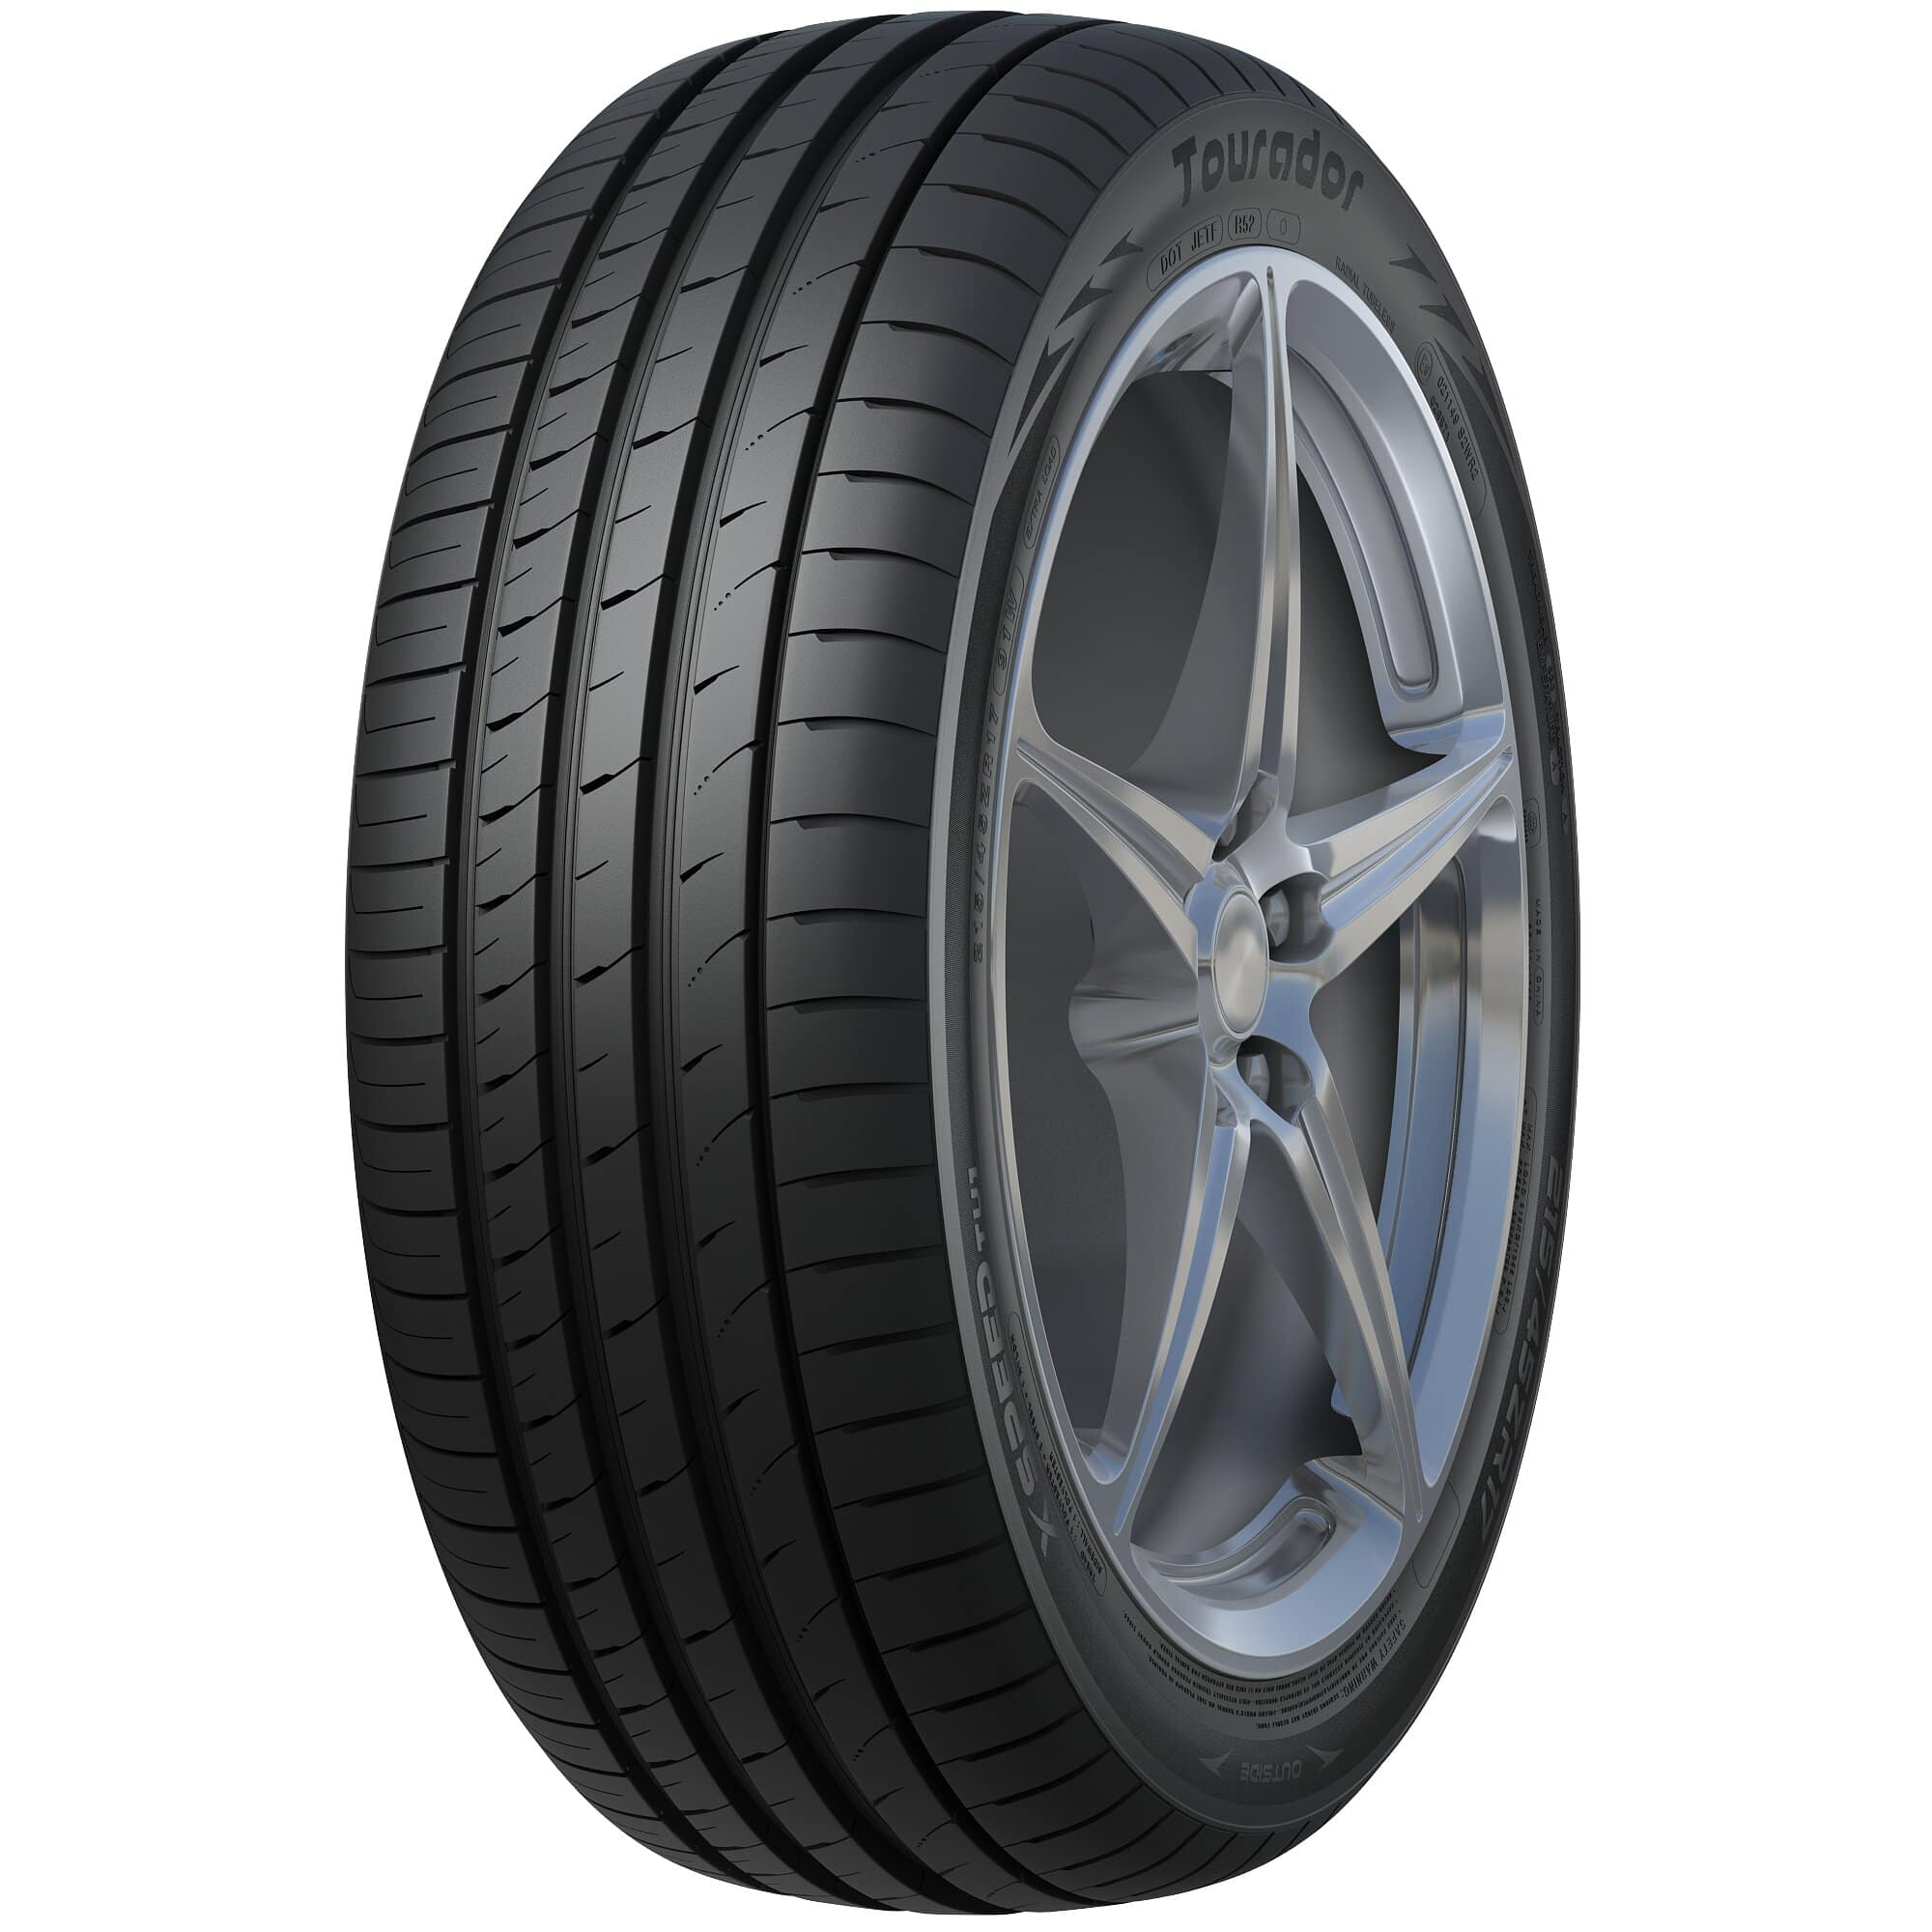 275/35R20 102Y TOURADOR X SPEED TU1 XL